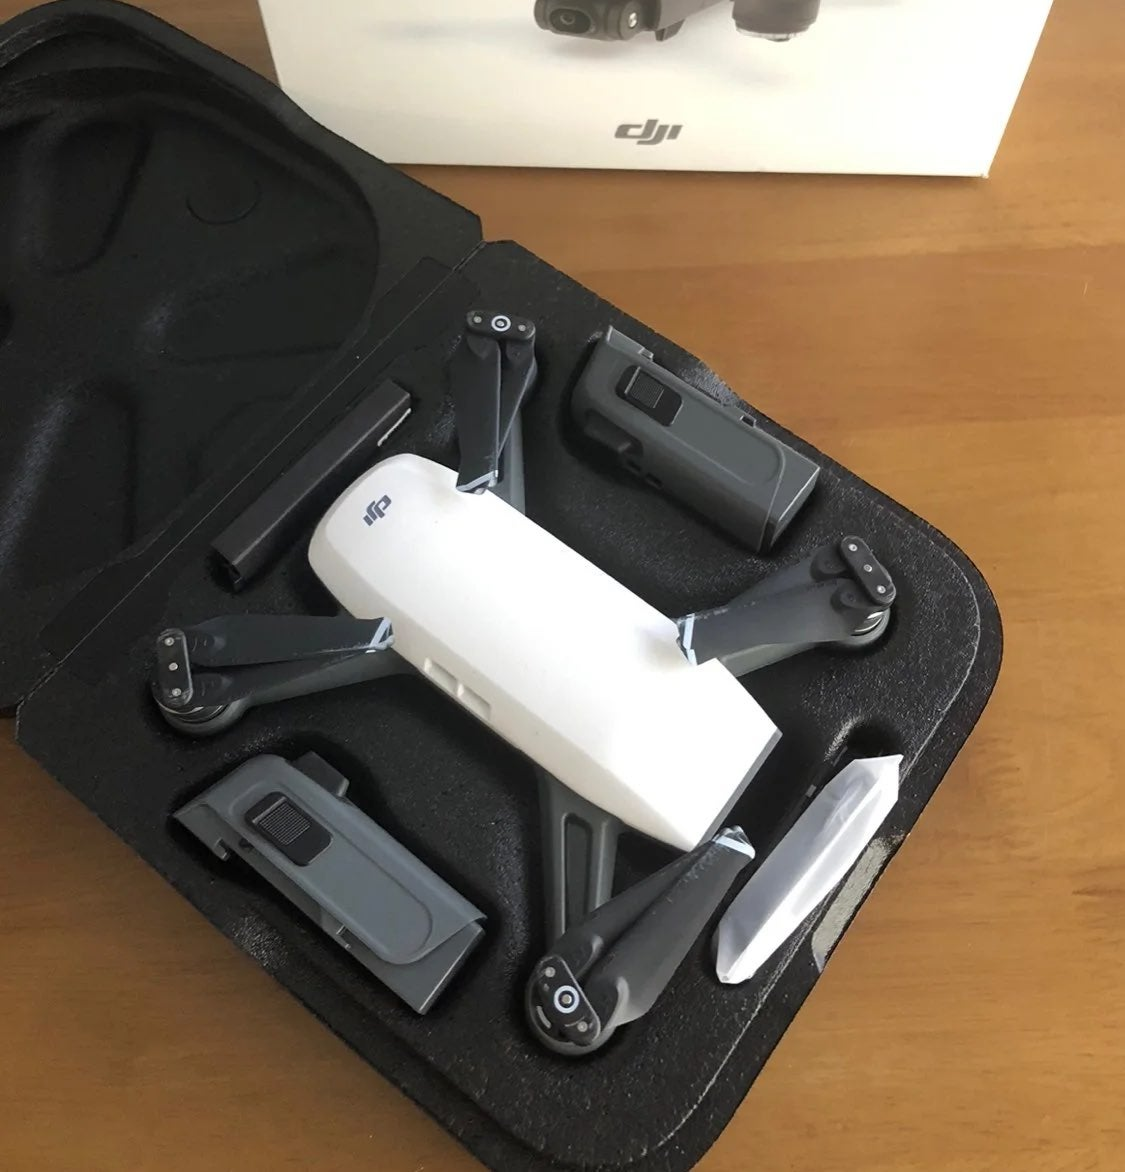 DJI Spark Alpine White + Charger